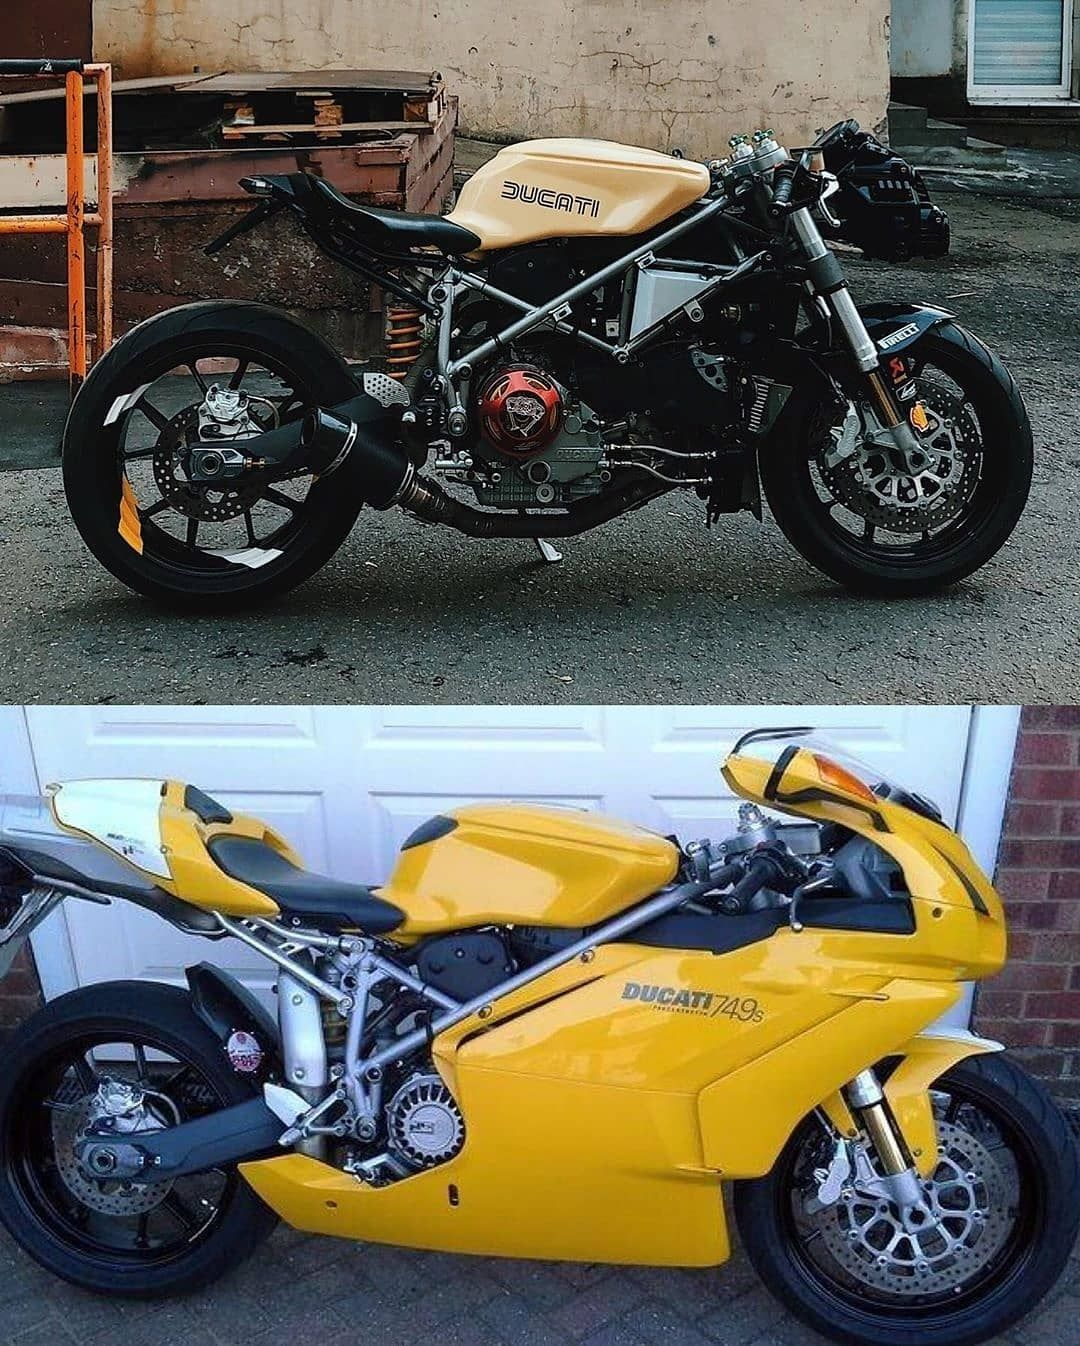 """🇸🇦🇮🇳🇹   🇲🇴🇹🇴🇷🇸™ on Instagram: """"🔧⚒️⚙️ by @ilya_mmbc Ducati 749/999, AFTER & BEFORE. #custom #bike #motorcycle #ducati #aggressiv #fast #instamoto #builtnotbought…"""""""